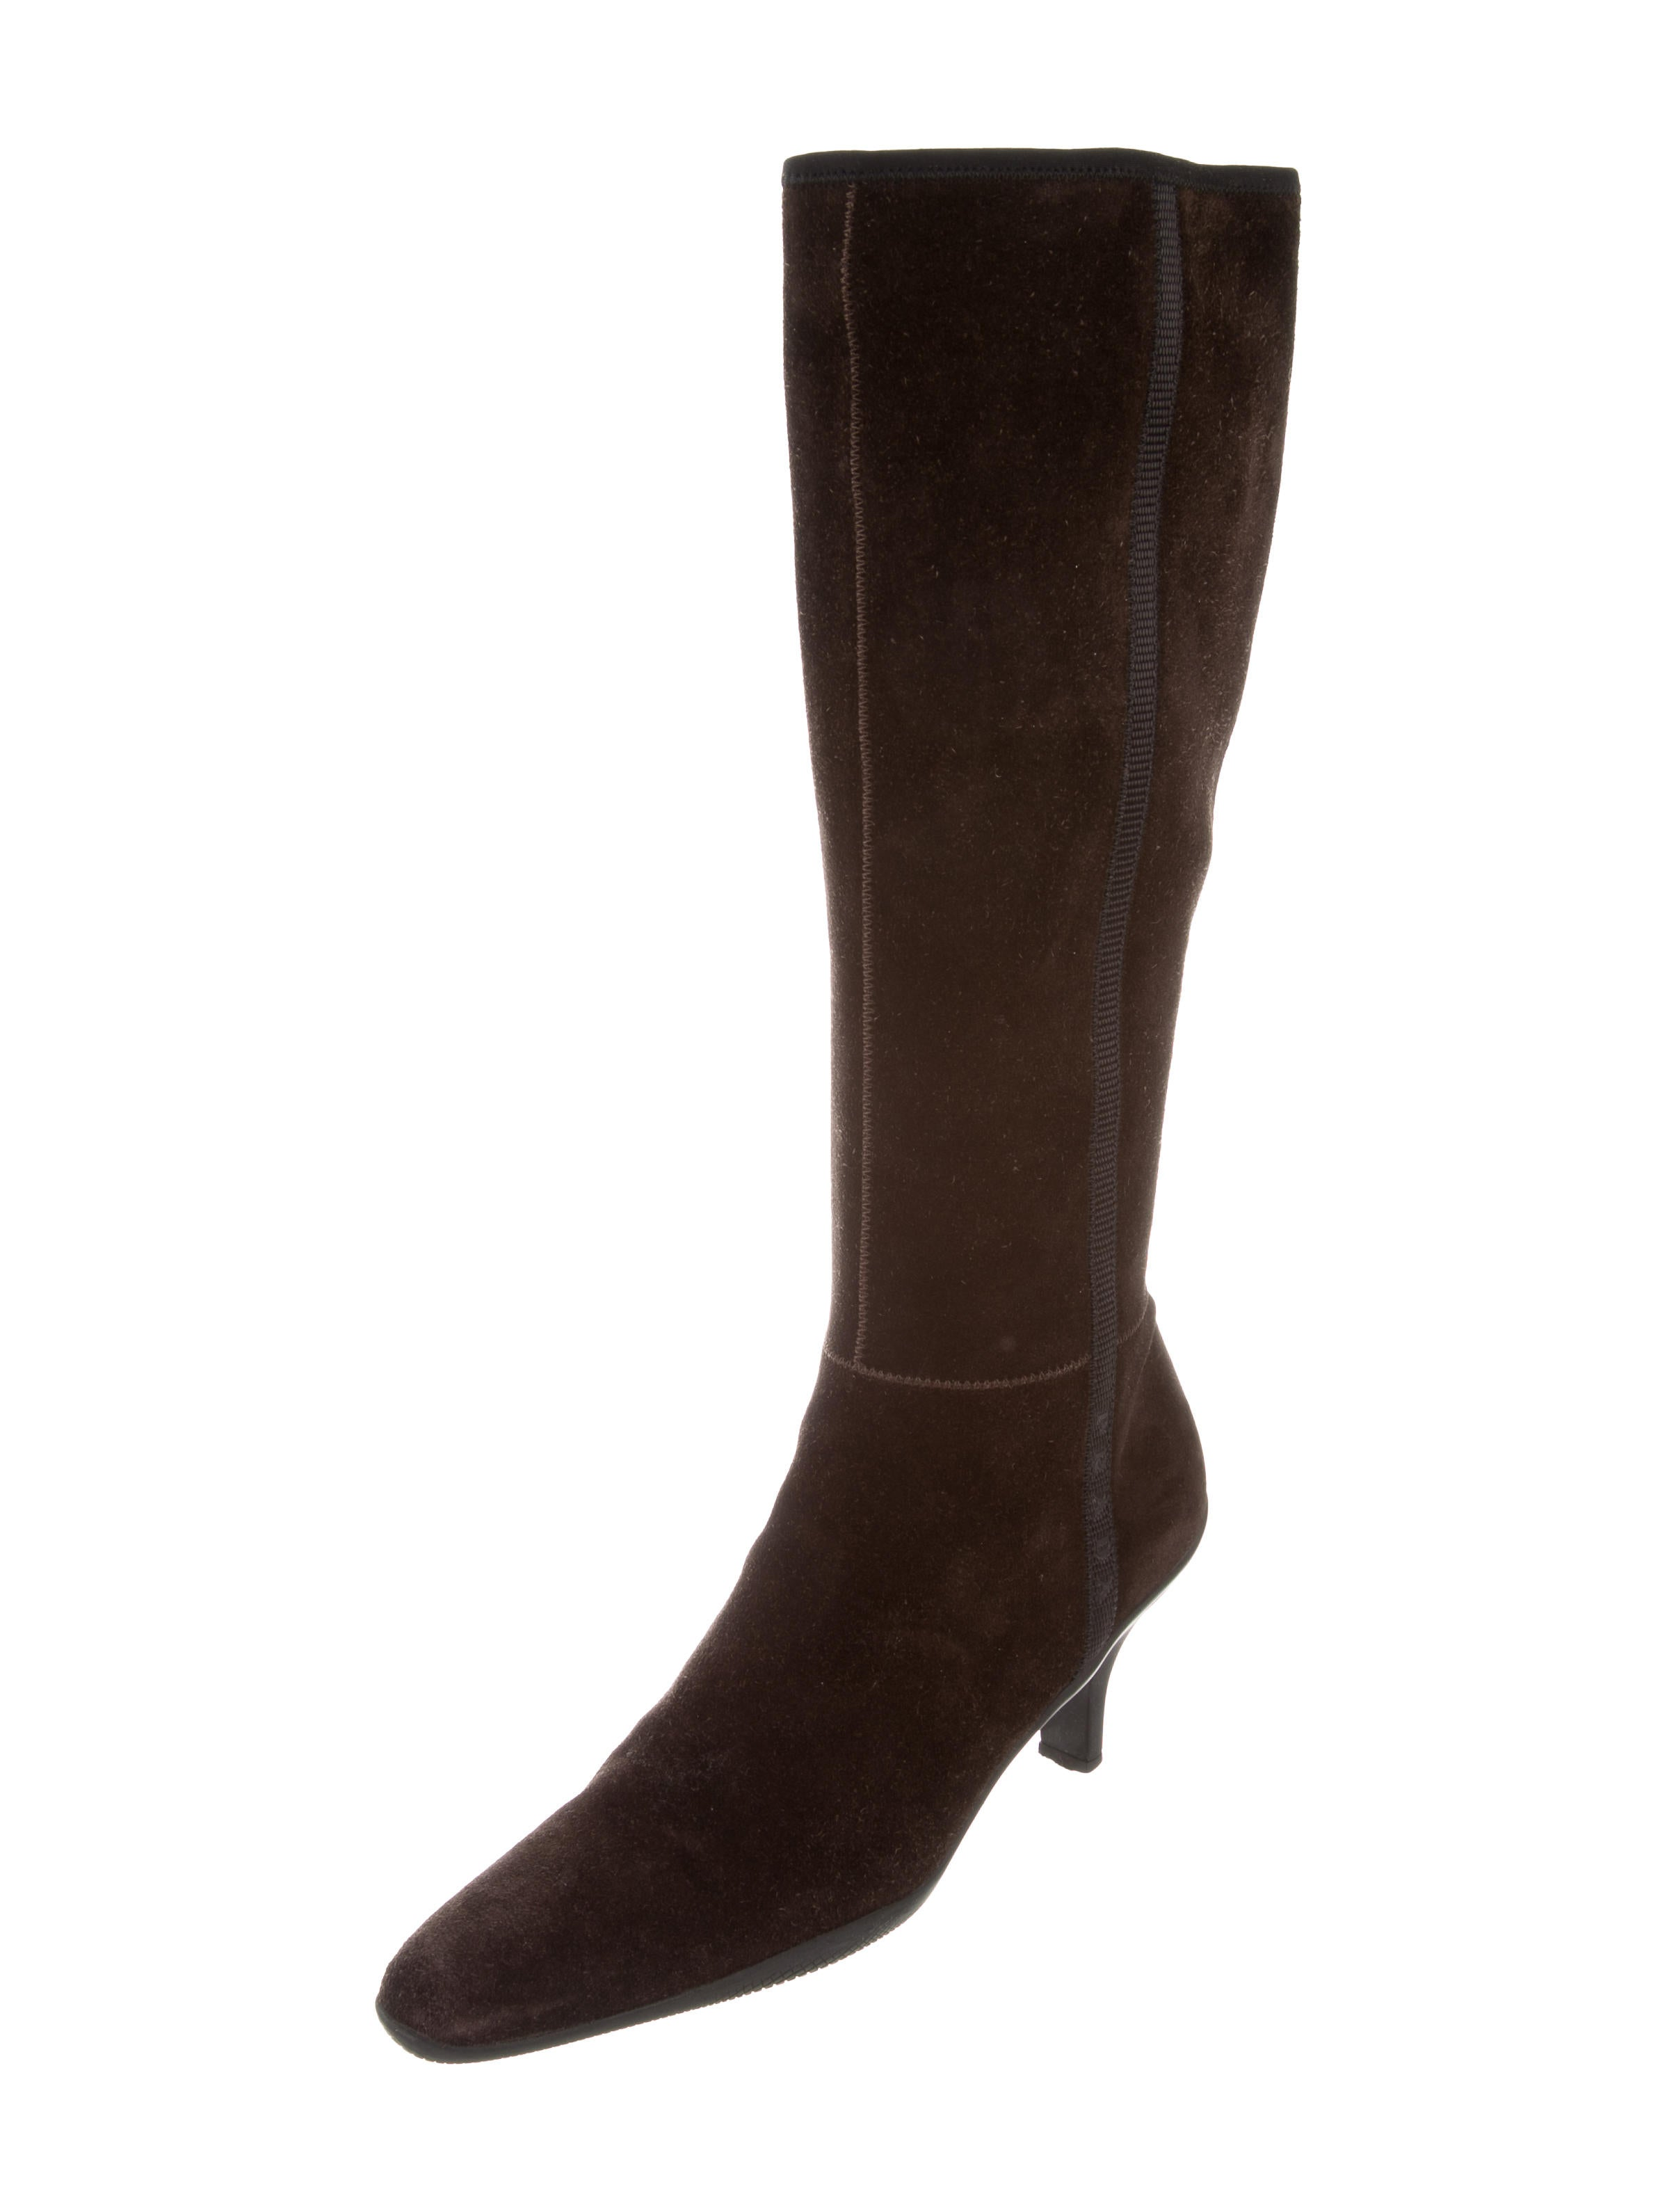 prada sport suede knee high boots shoes wpr42647 the